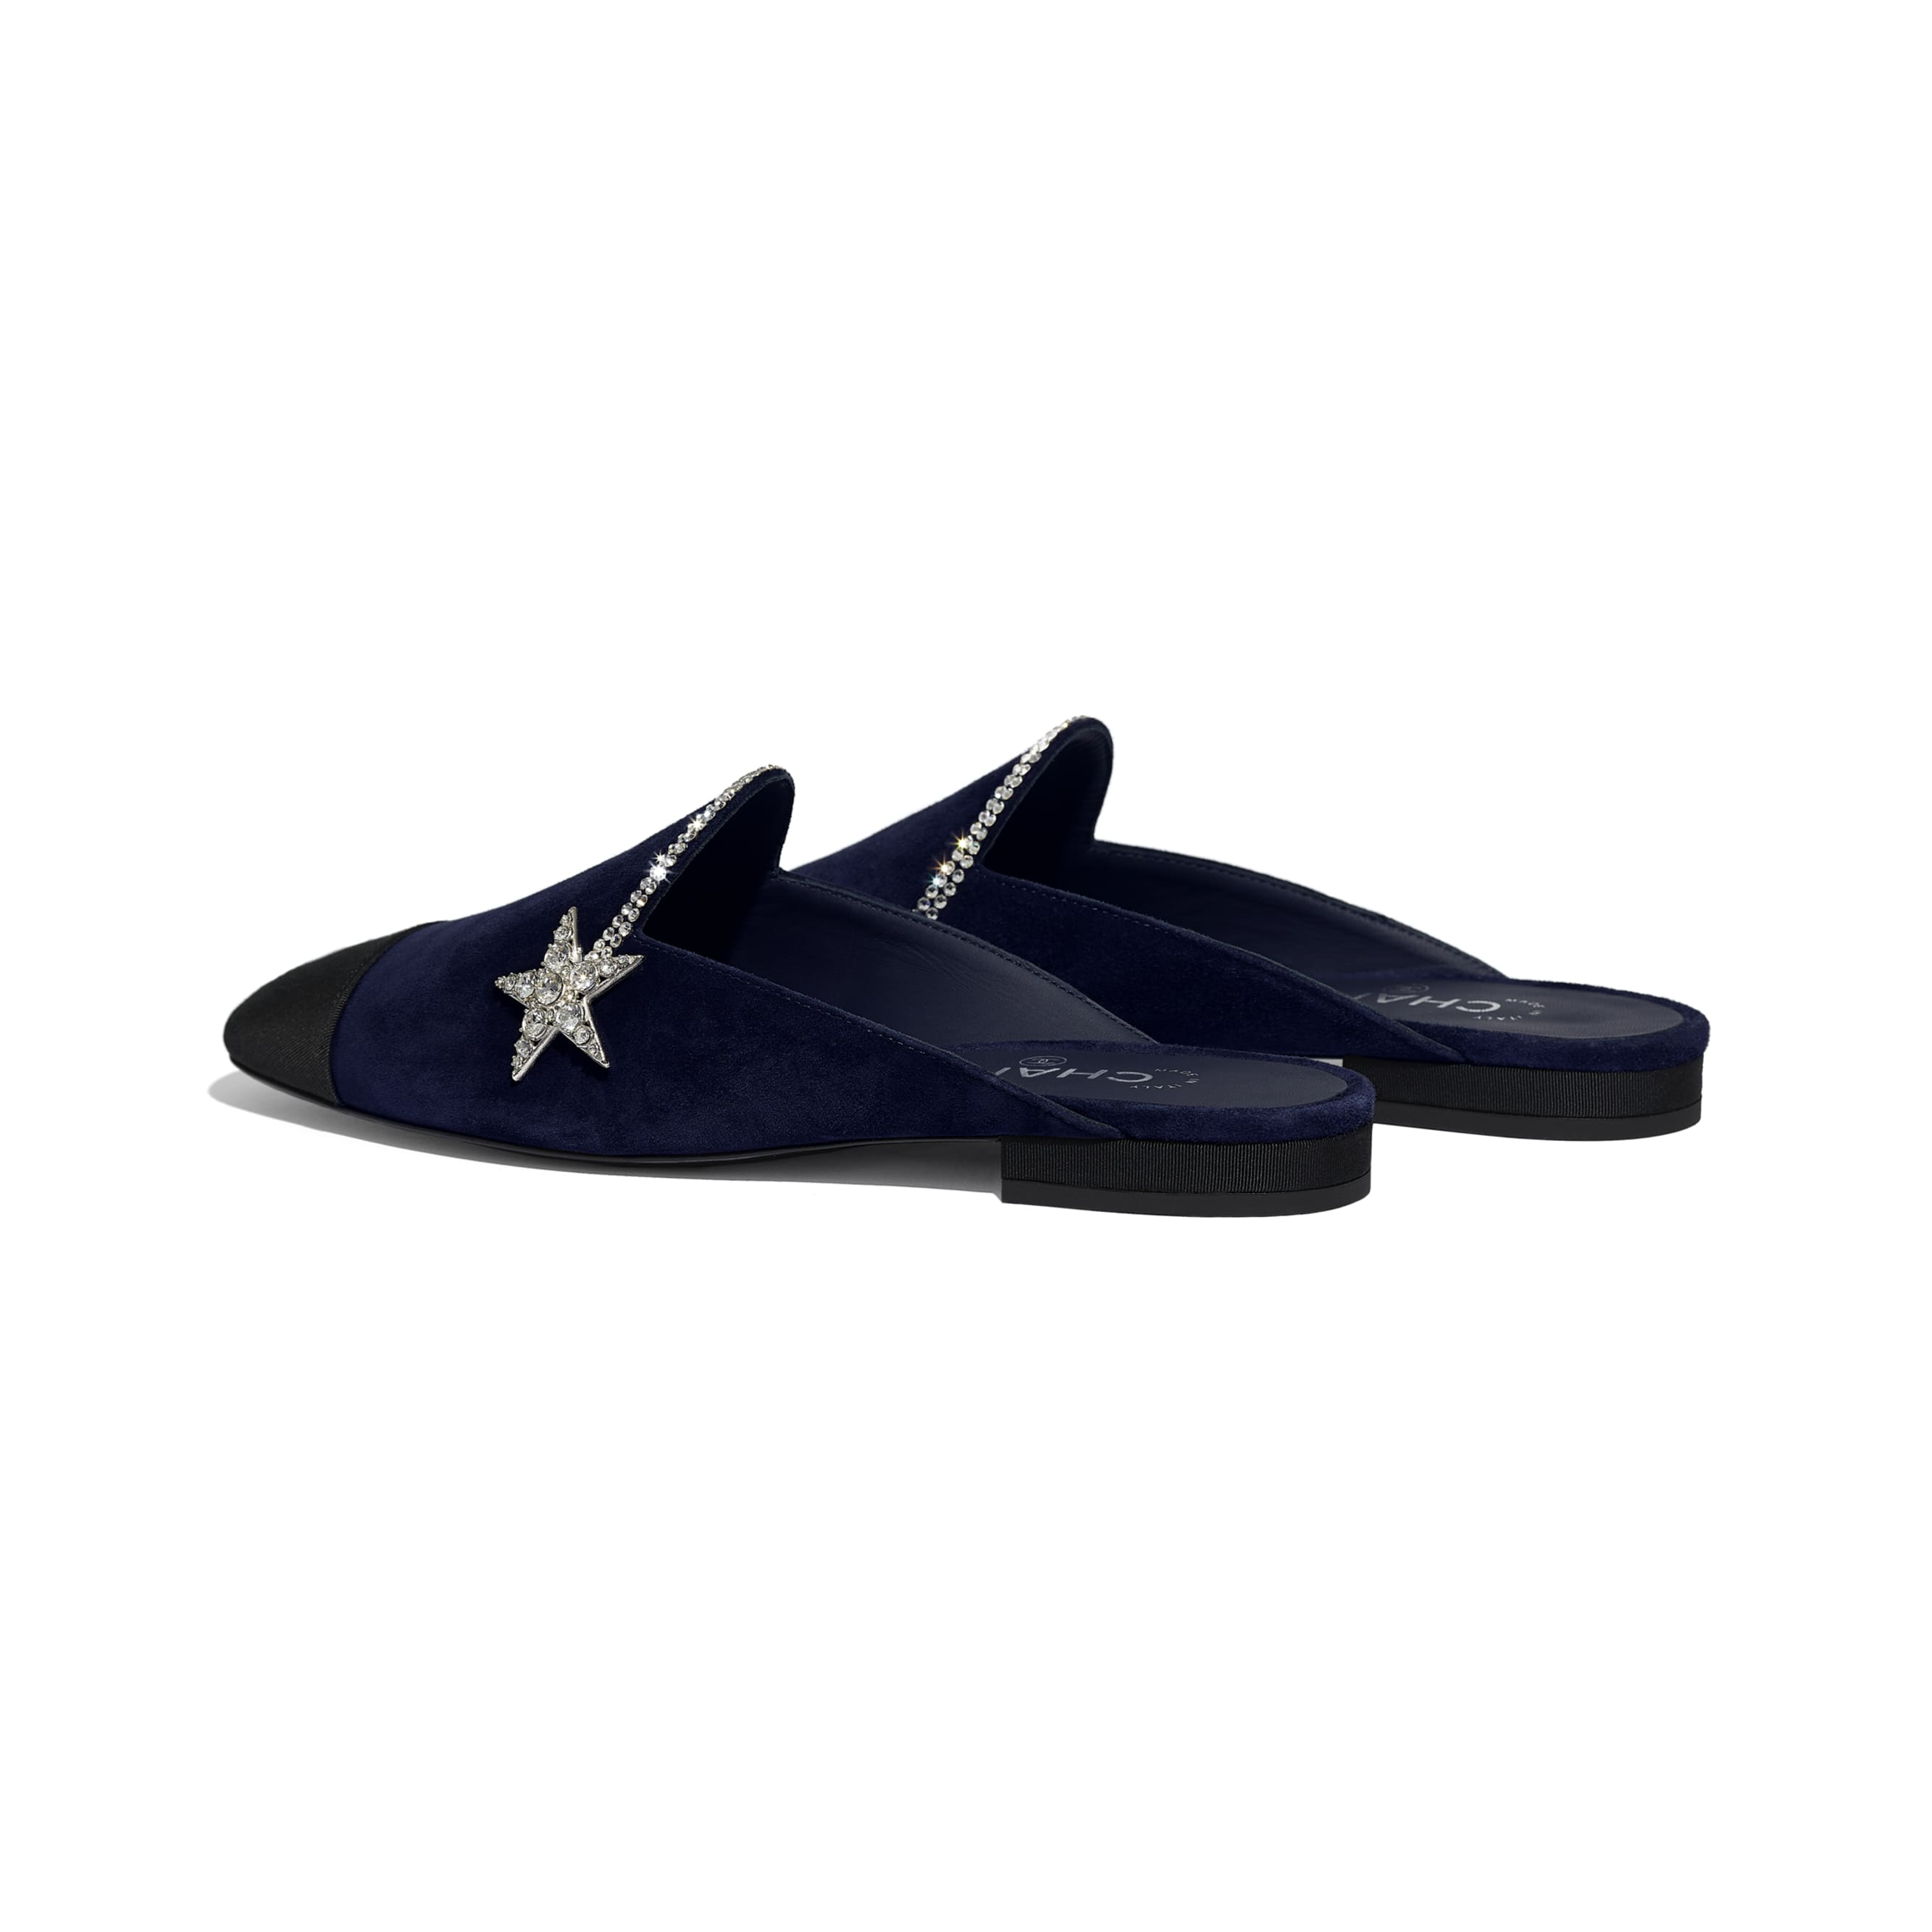 Mules - Navy Blue & Black - Suede Calfskin & Grosgrain - CHANEL - Other view - see standard sized version